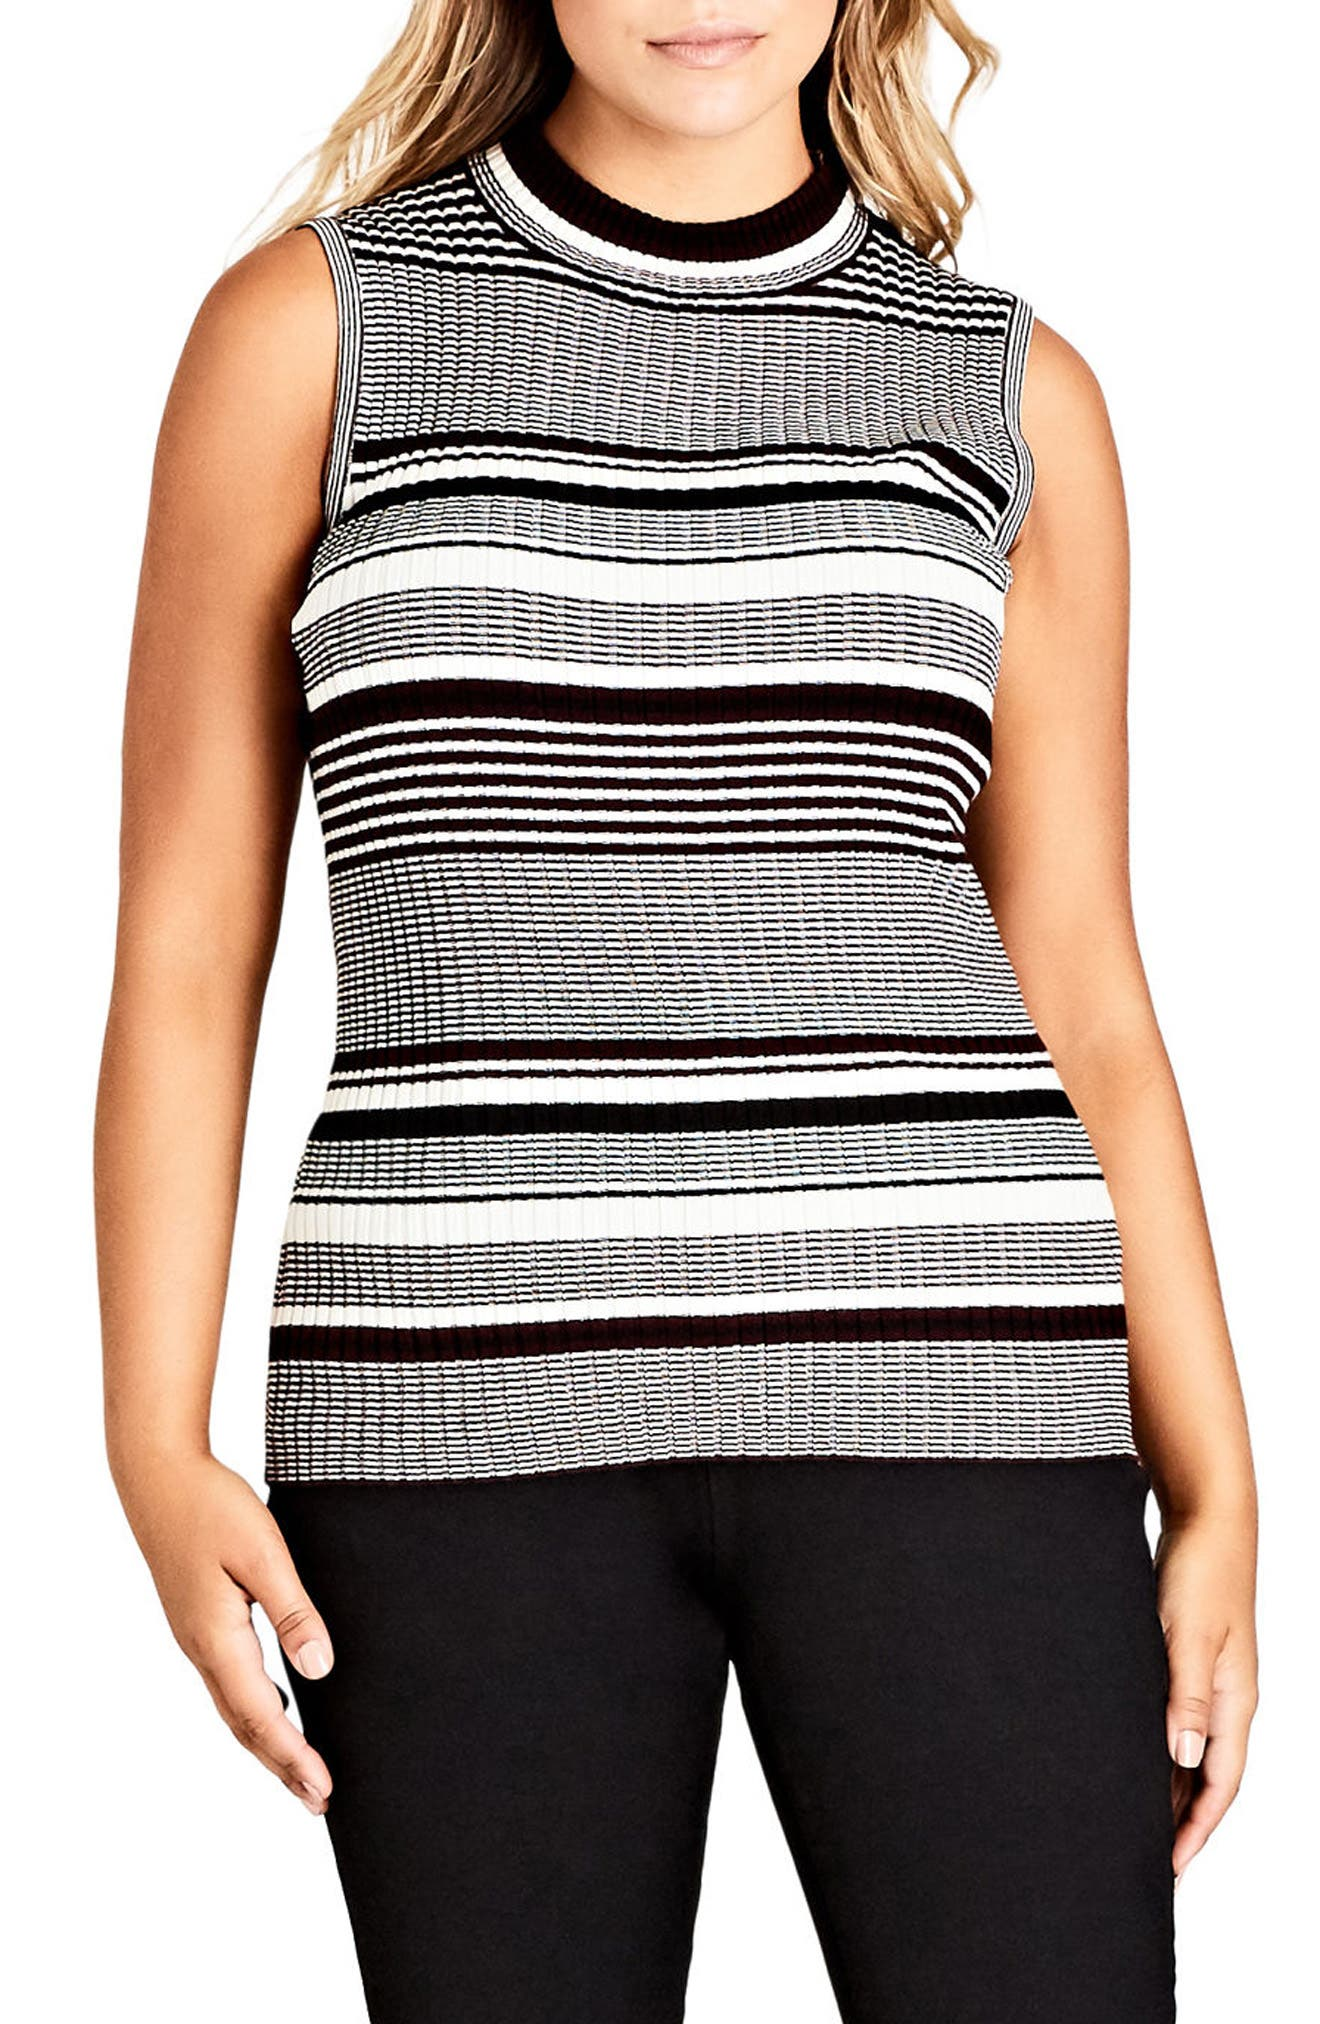 Chic City Stripe Play Top,                         Main,                         color, 001